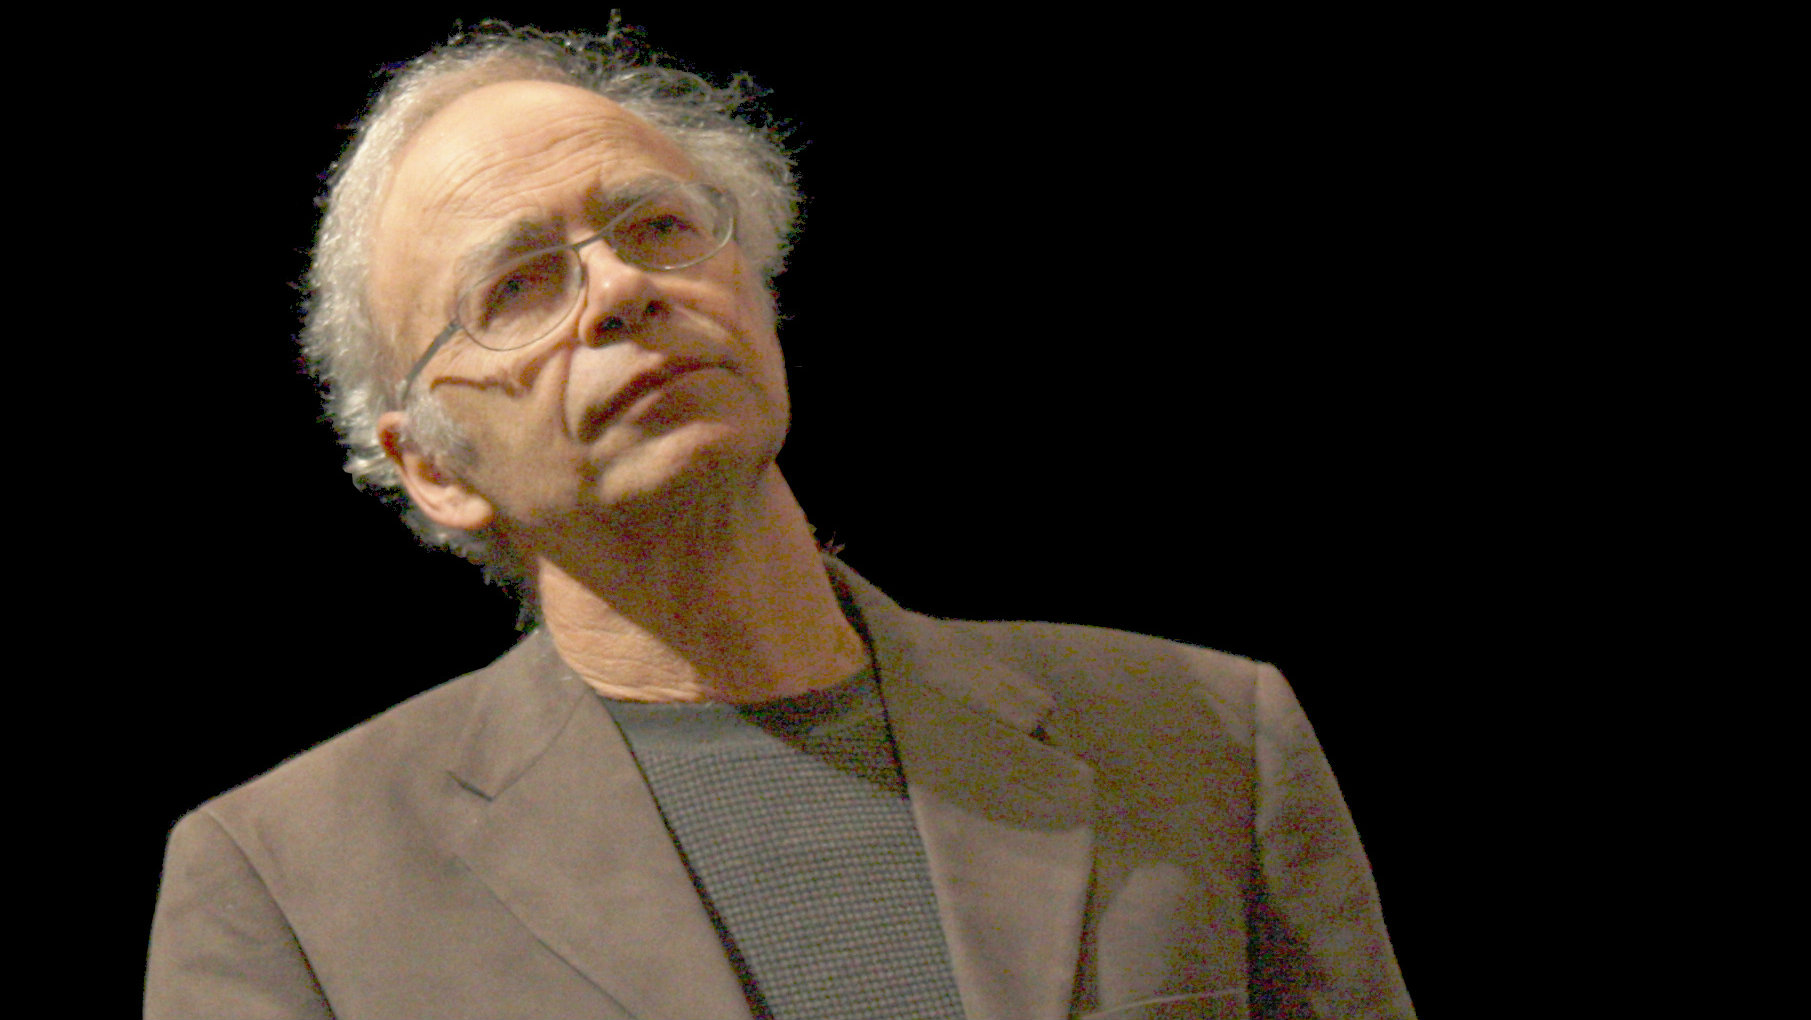 Peter Singer has an optimistic outlook.